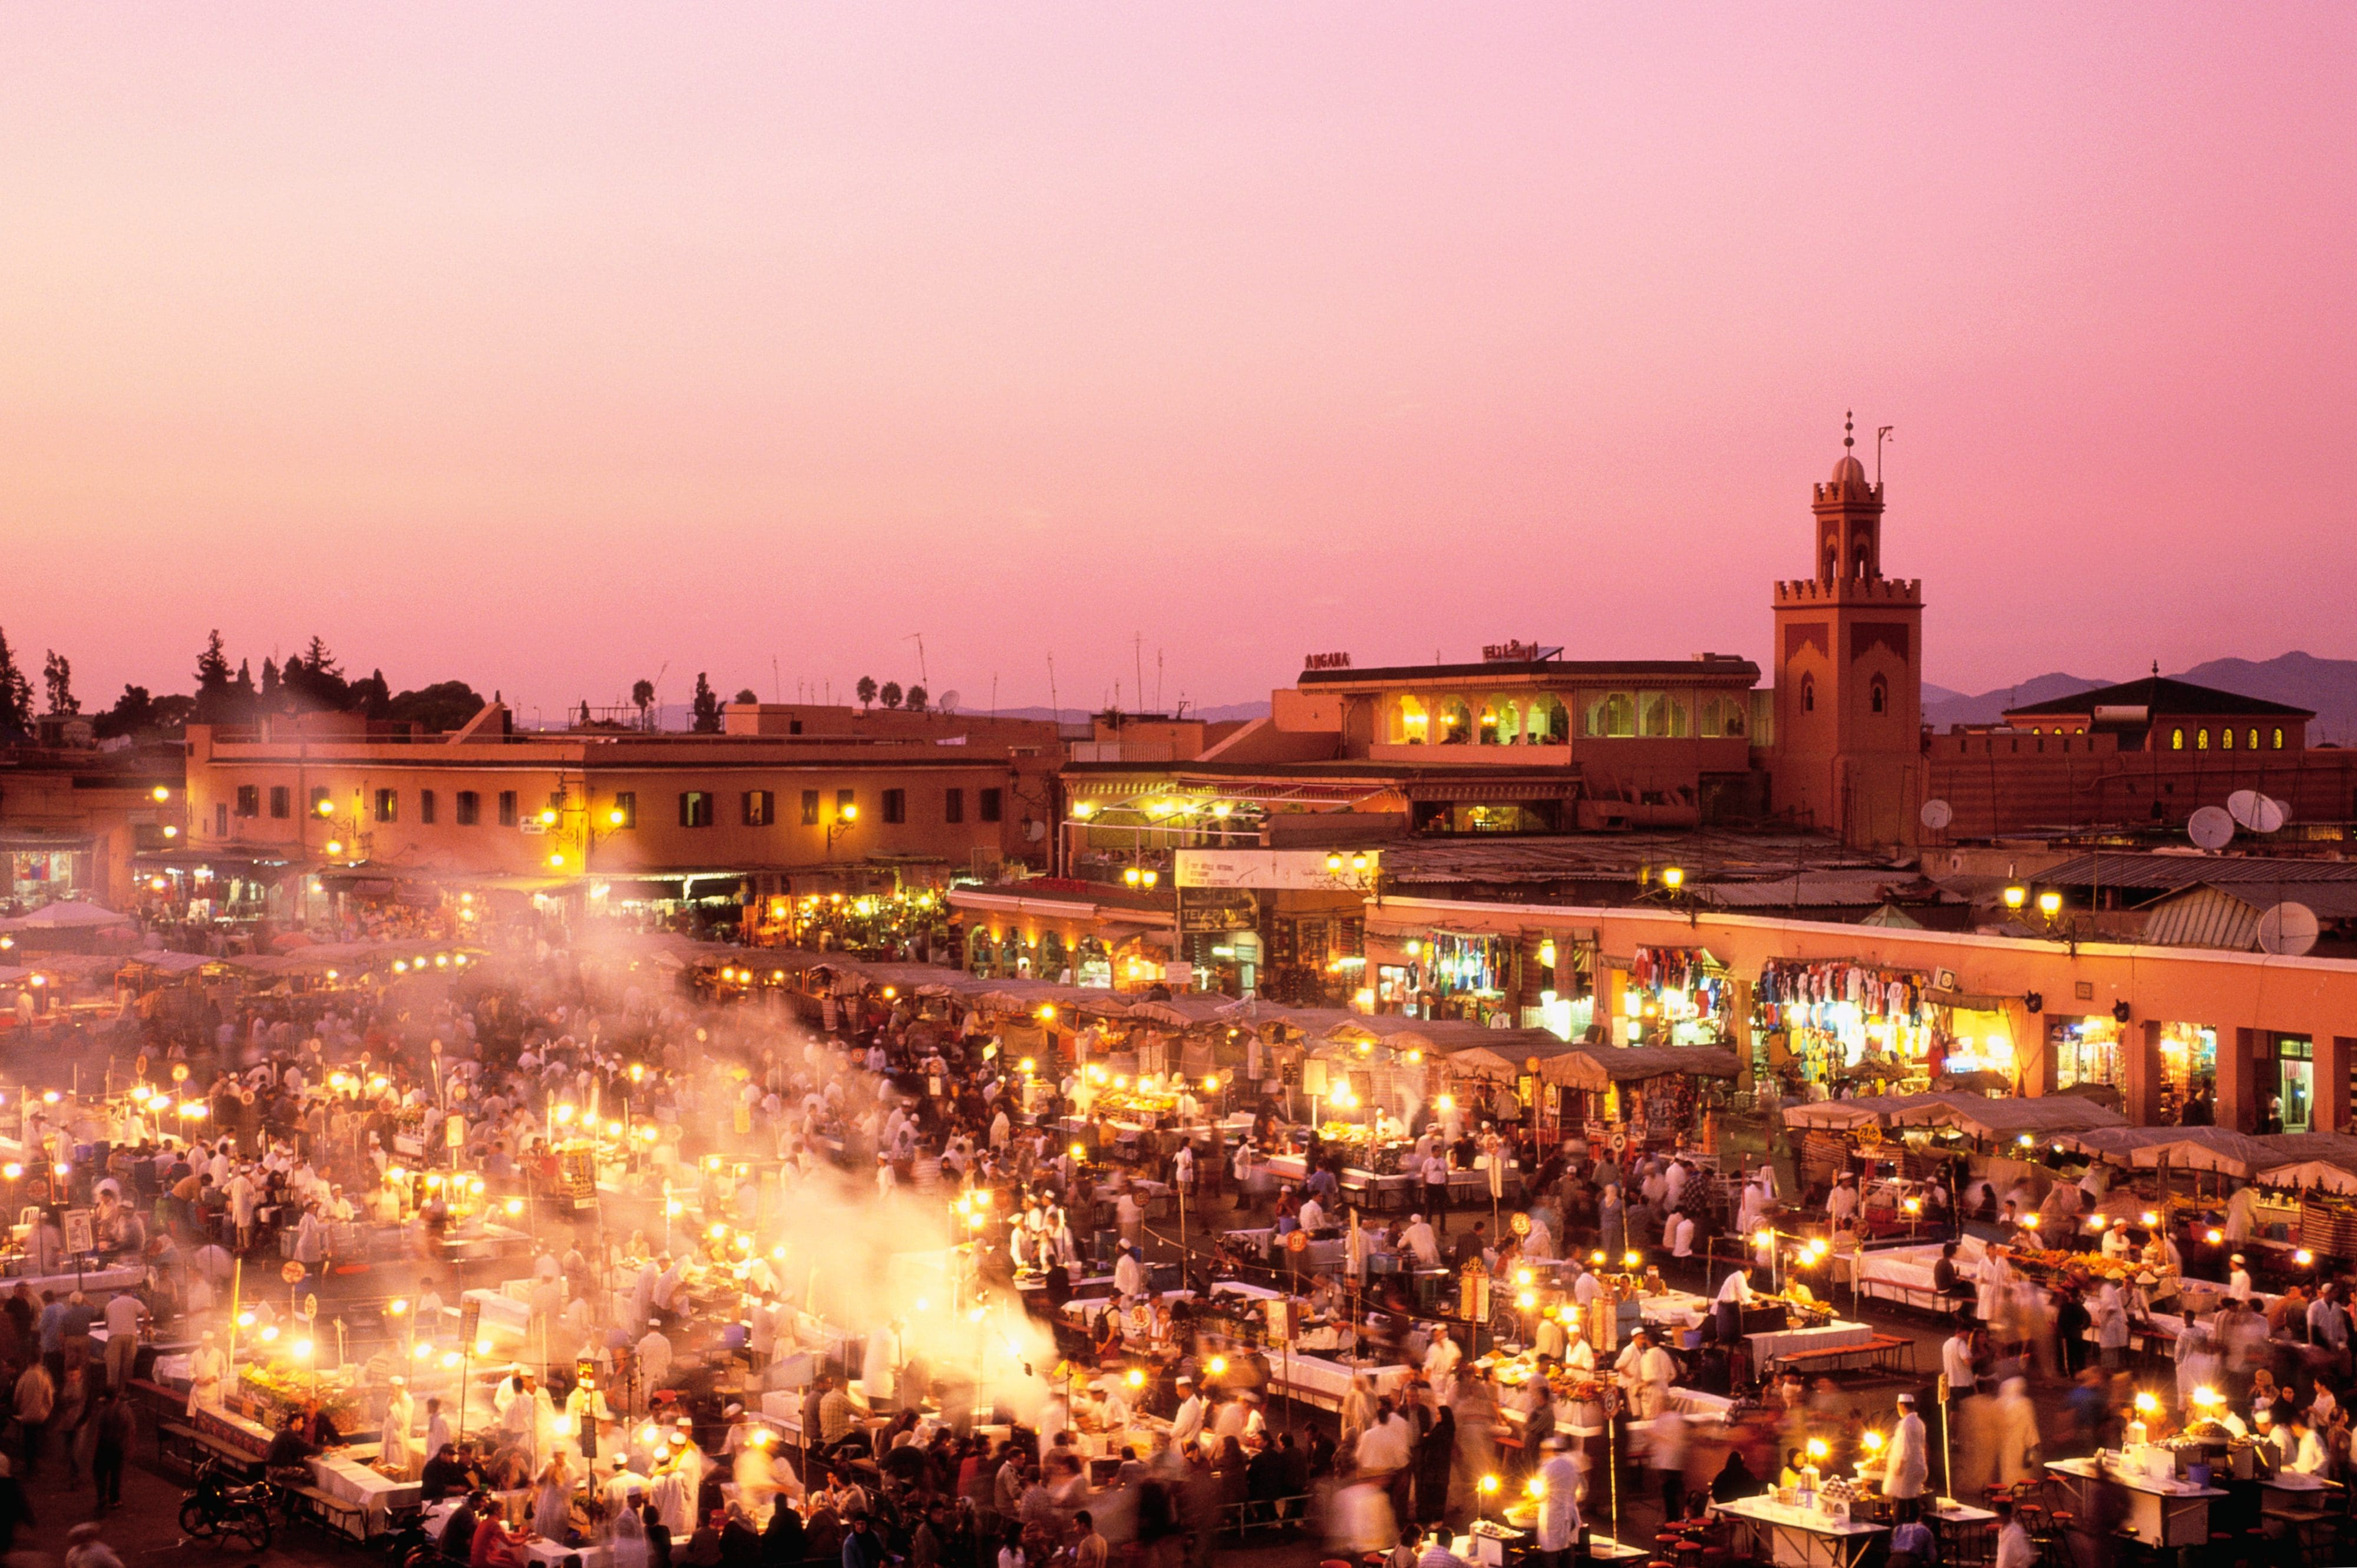 The Medina marketplace in Marrakech at evening time